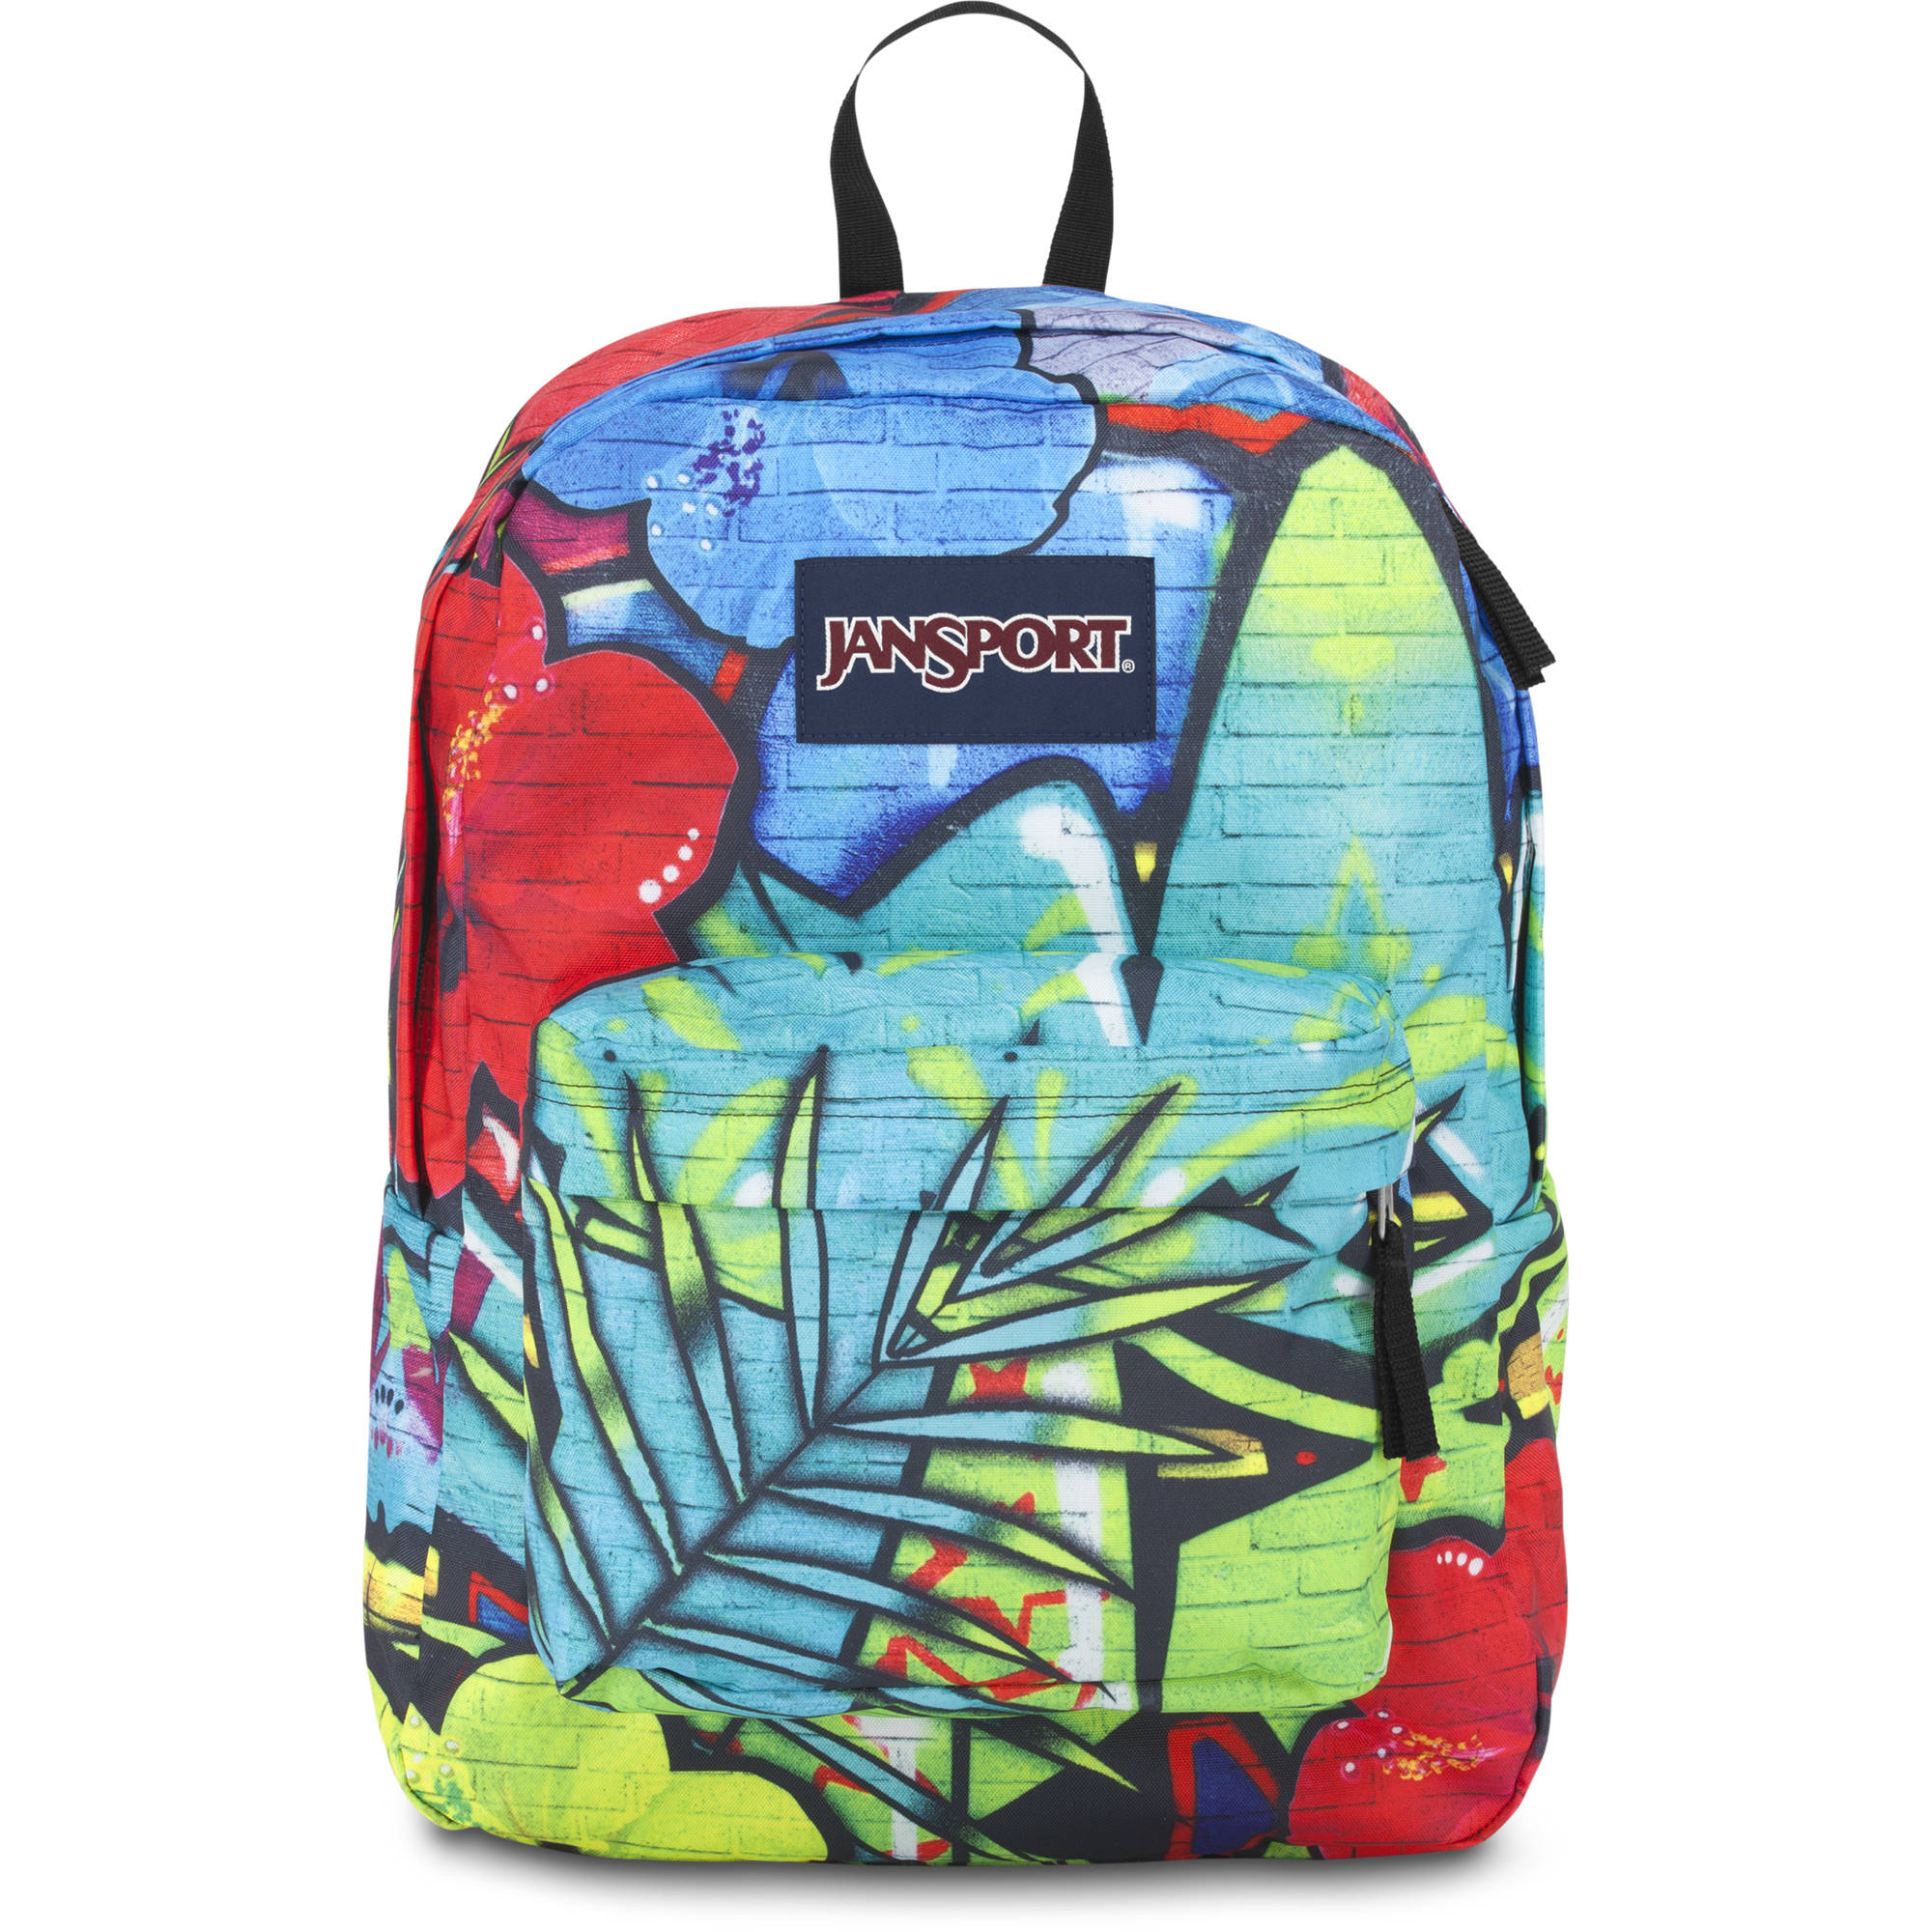 012fc429a392 JanSport High Stakes Backpack (Multi Graffiti) JS00TRS70E6 B H